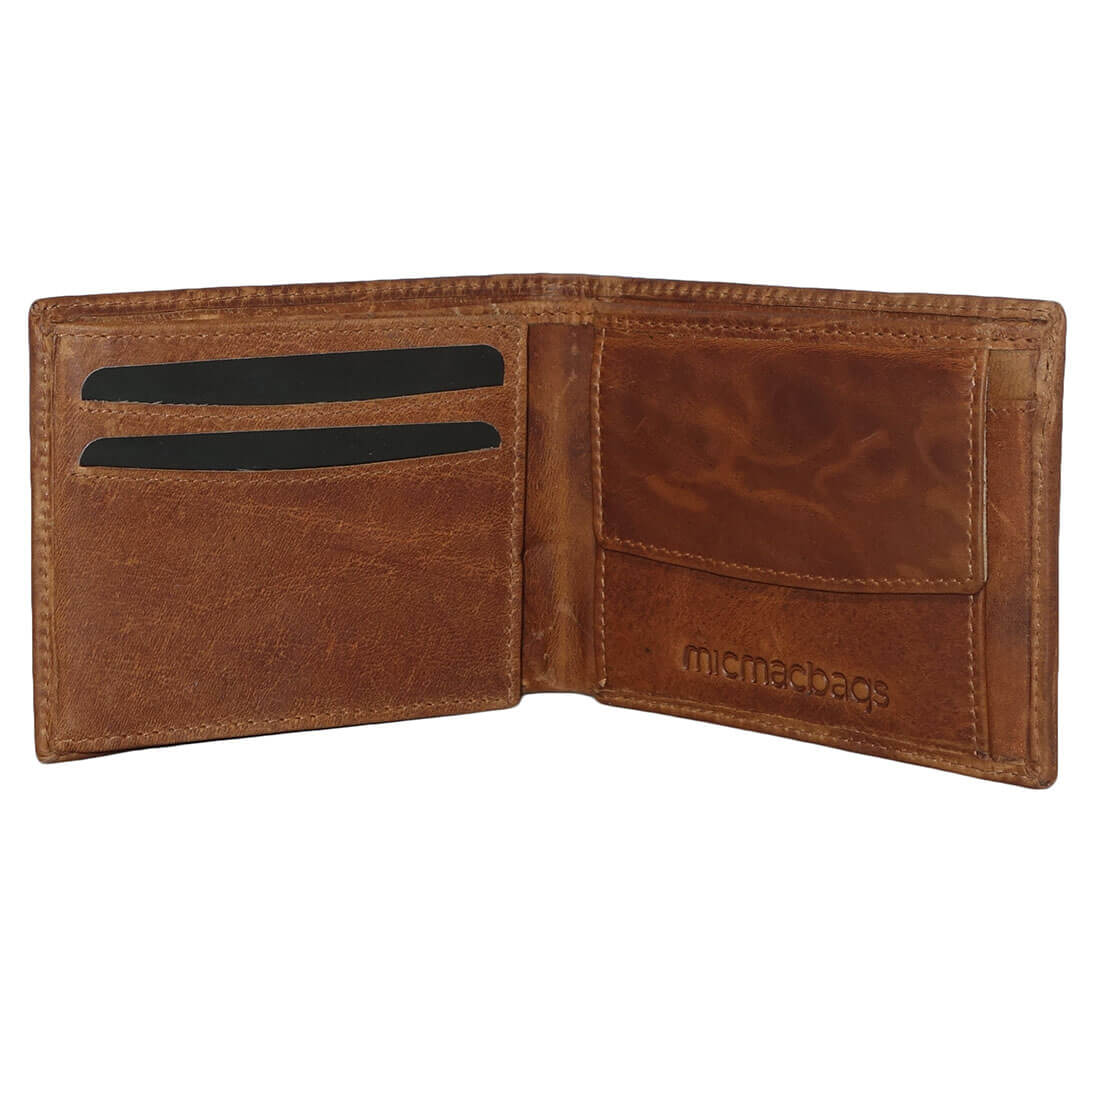 Micmacbags Faible Rfid Billfold / Cognac Bourse ObT3xMt